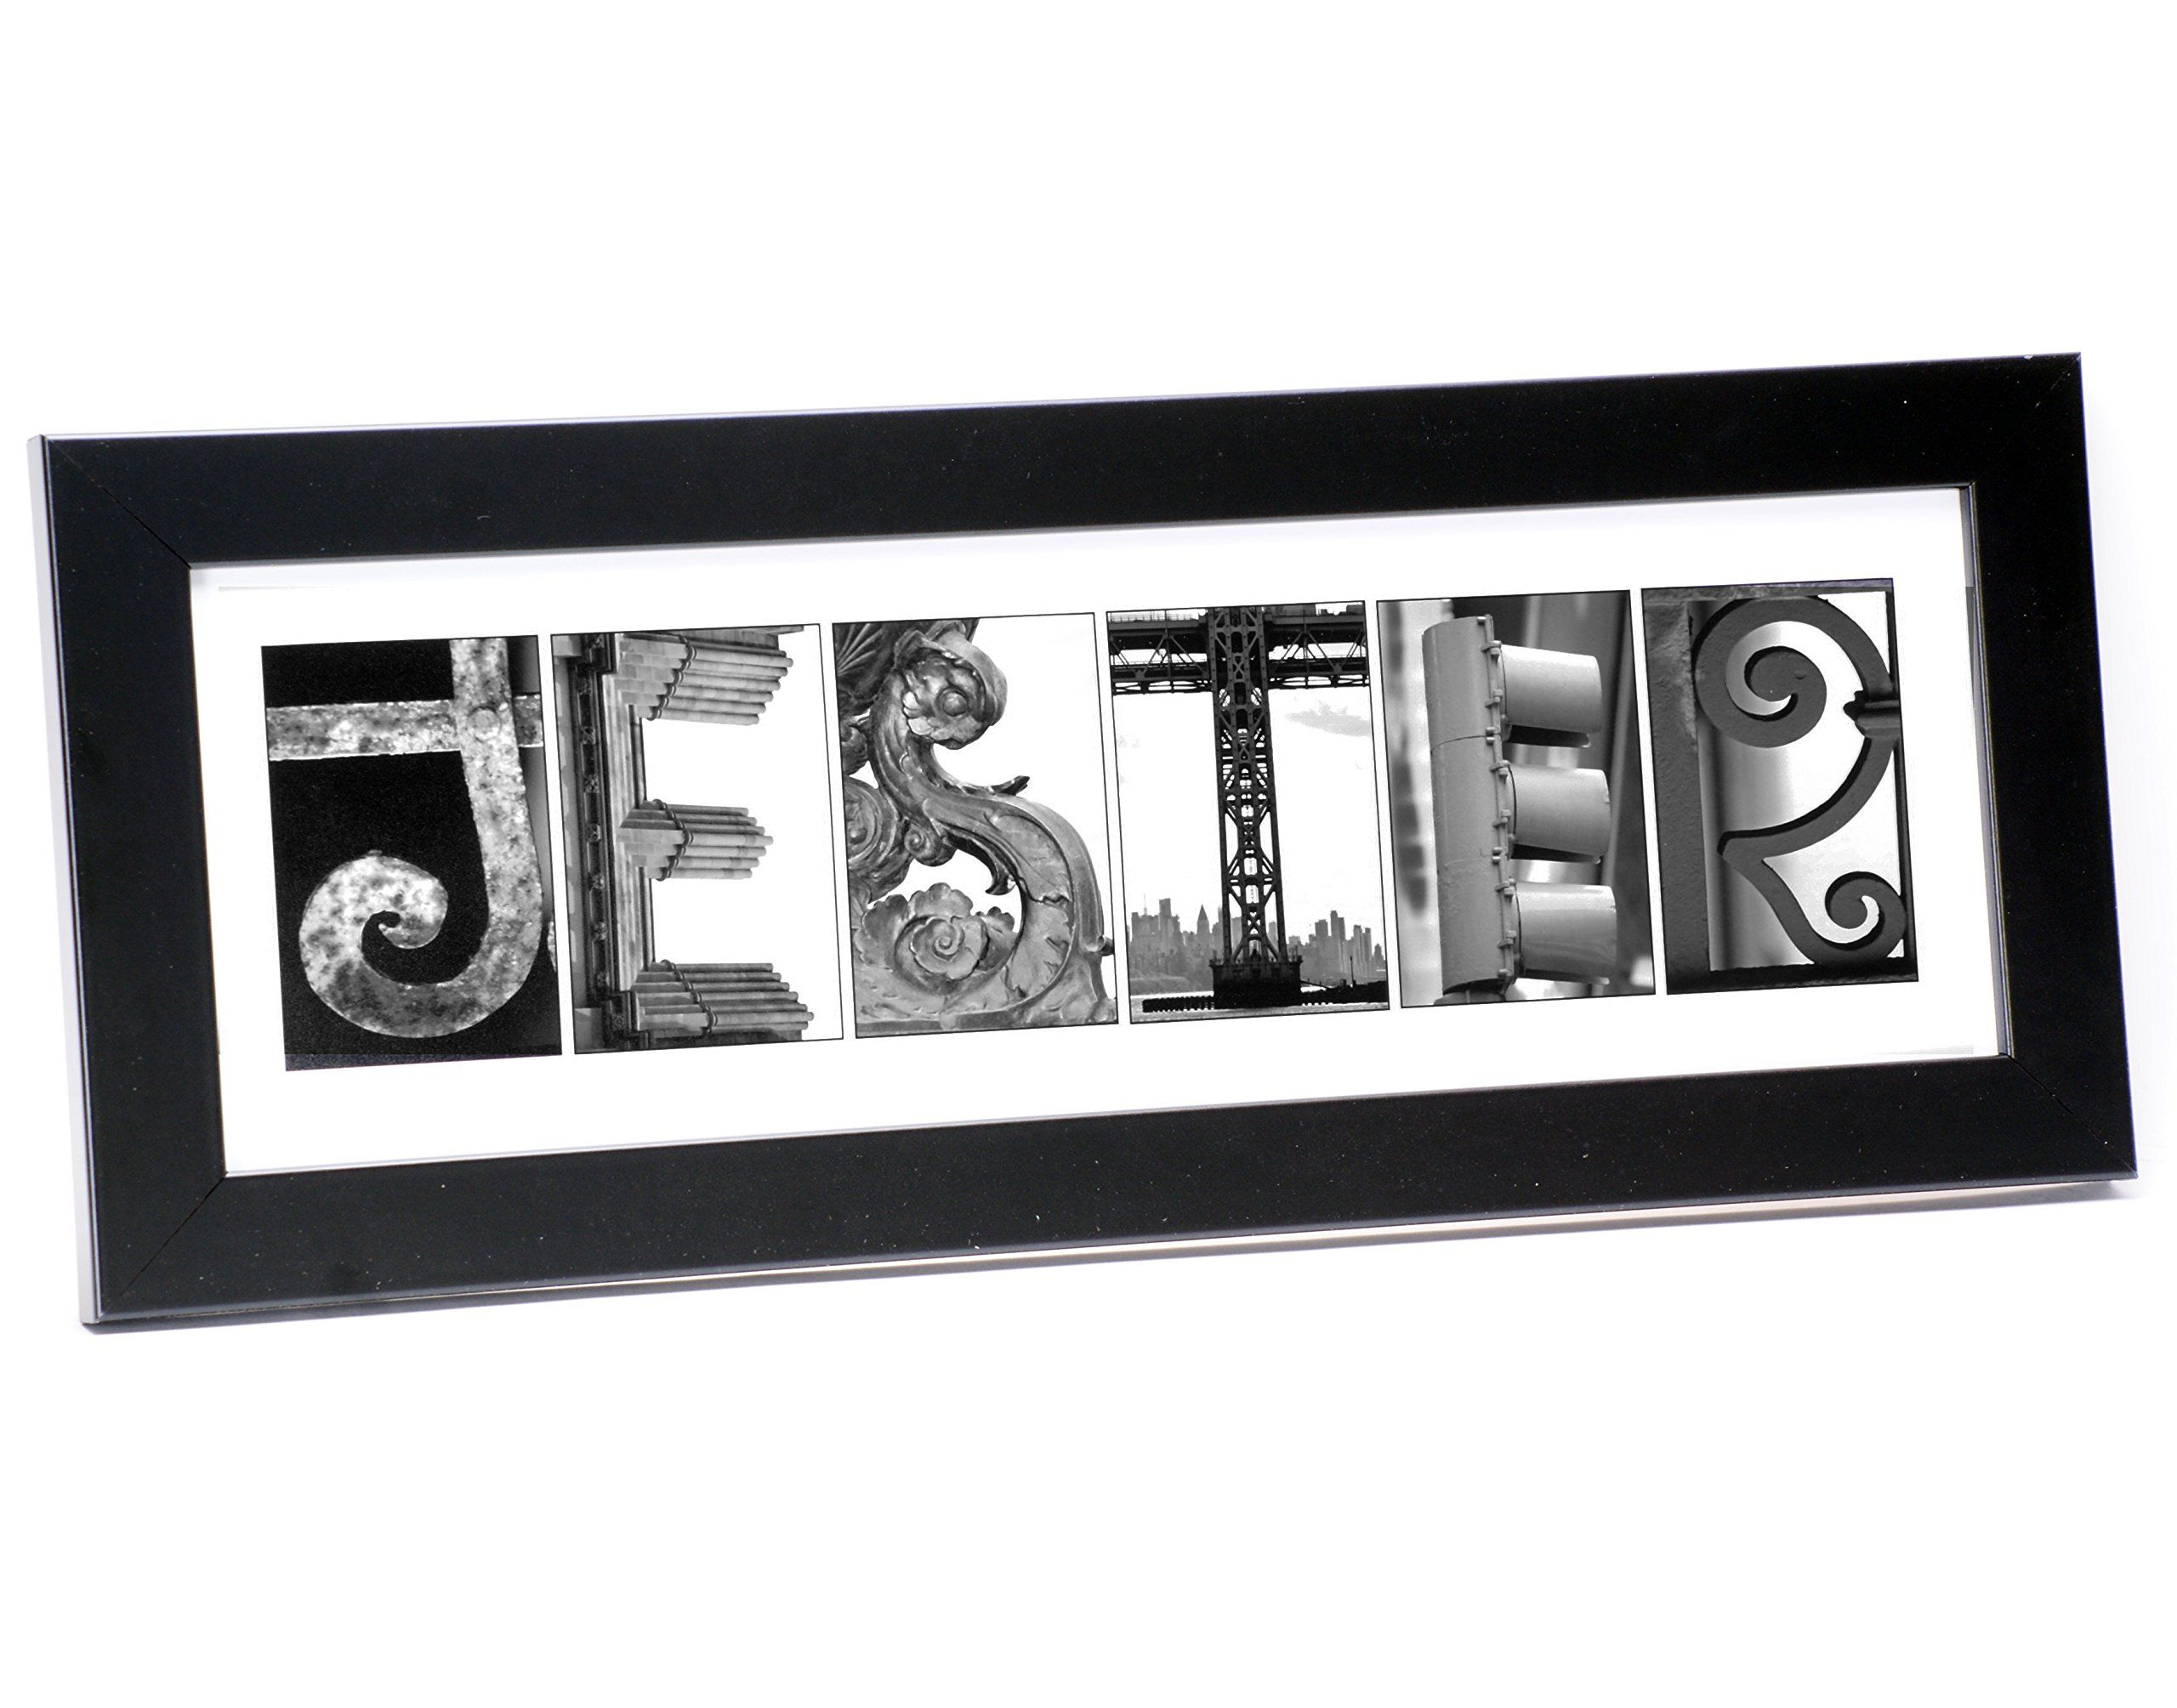 Creative Letter Art Personalized Sign Black And White Architecture